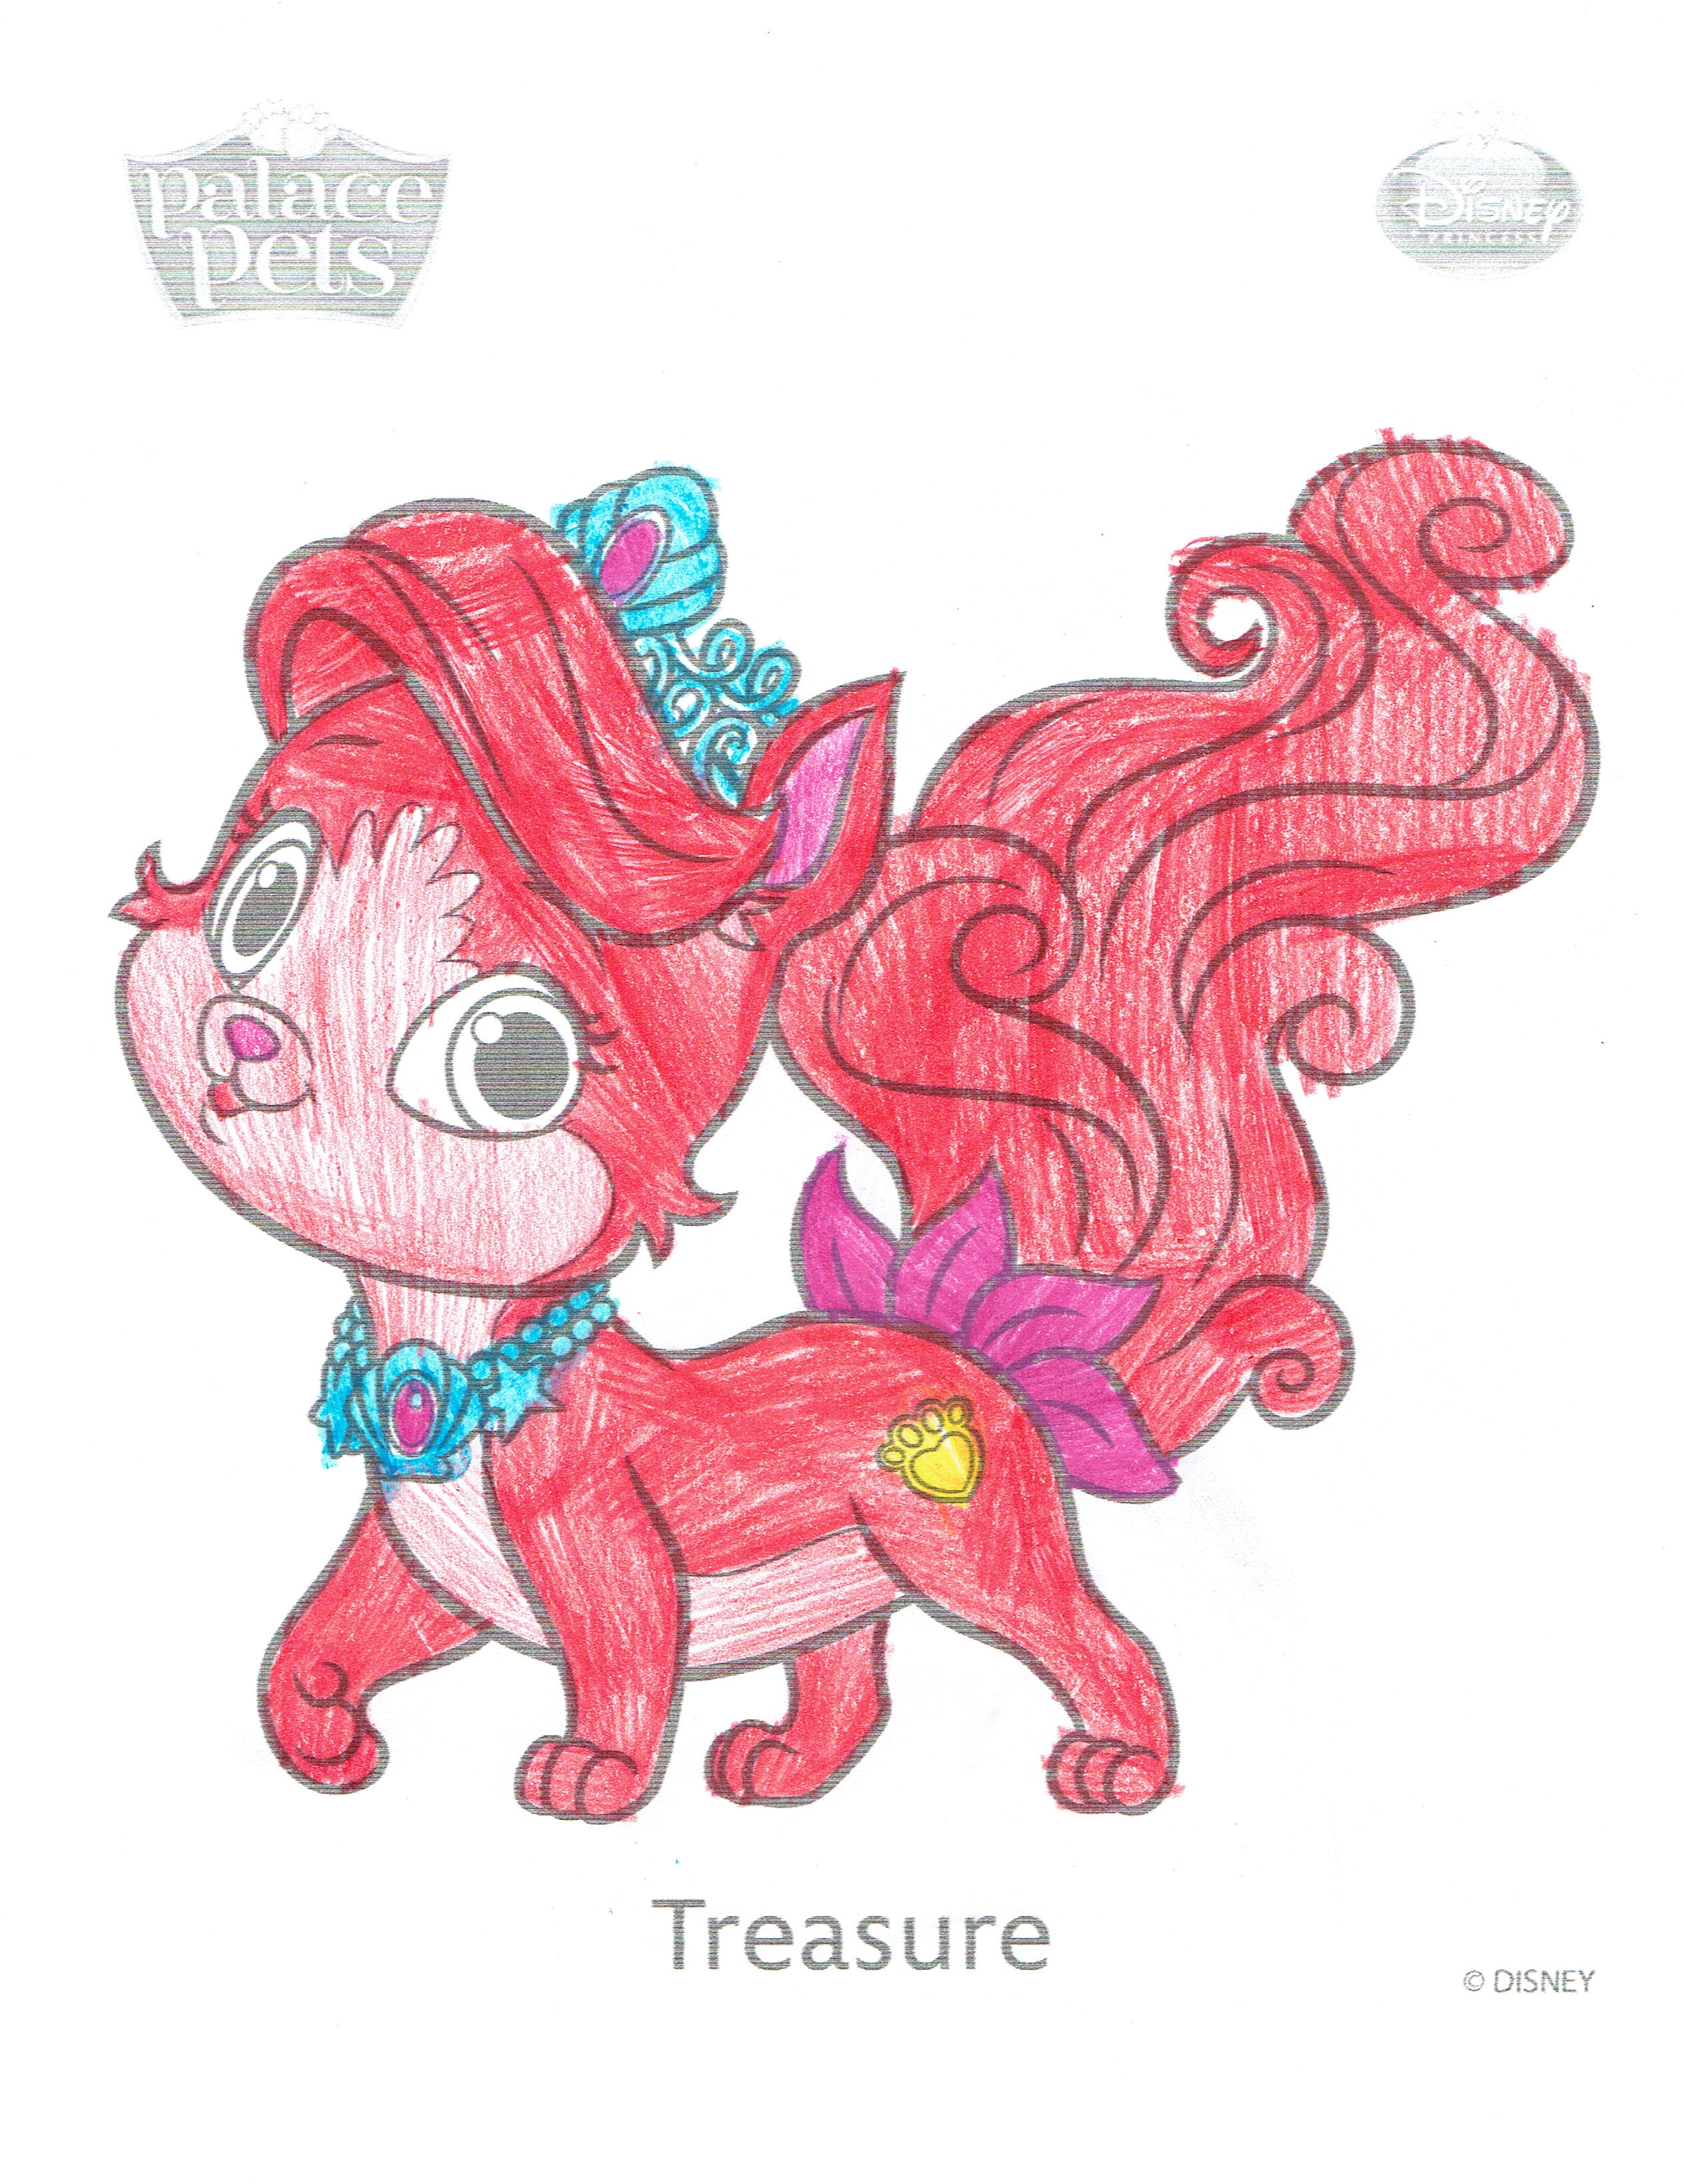 400x517 Princess Palace Pets Coloring Pages With Kids N Fun 2526x3276 Treasure Lilly The Artist